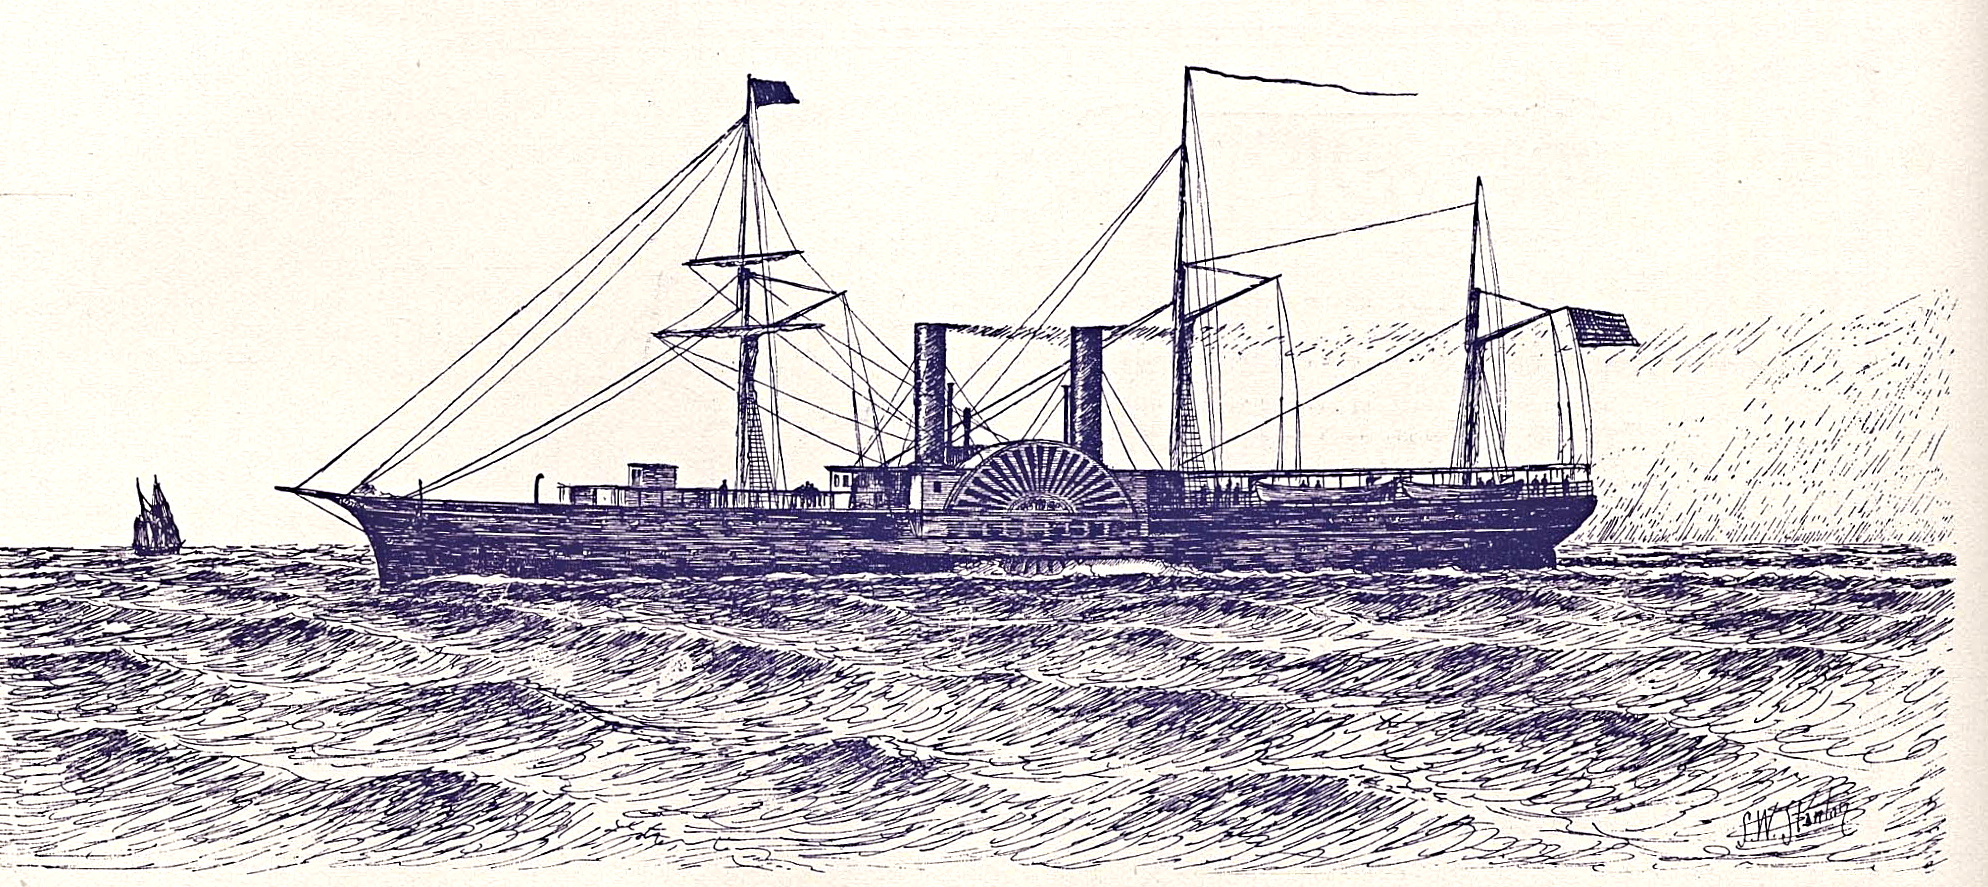 1855 : The Steamship Illinois is First Ship To Pass through Sault Ste. Marie Locks